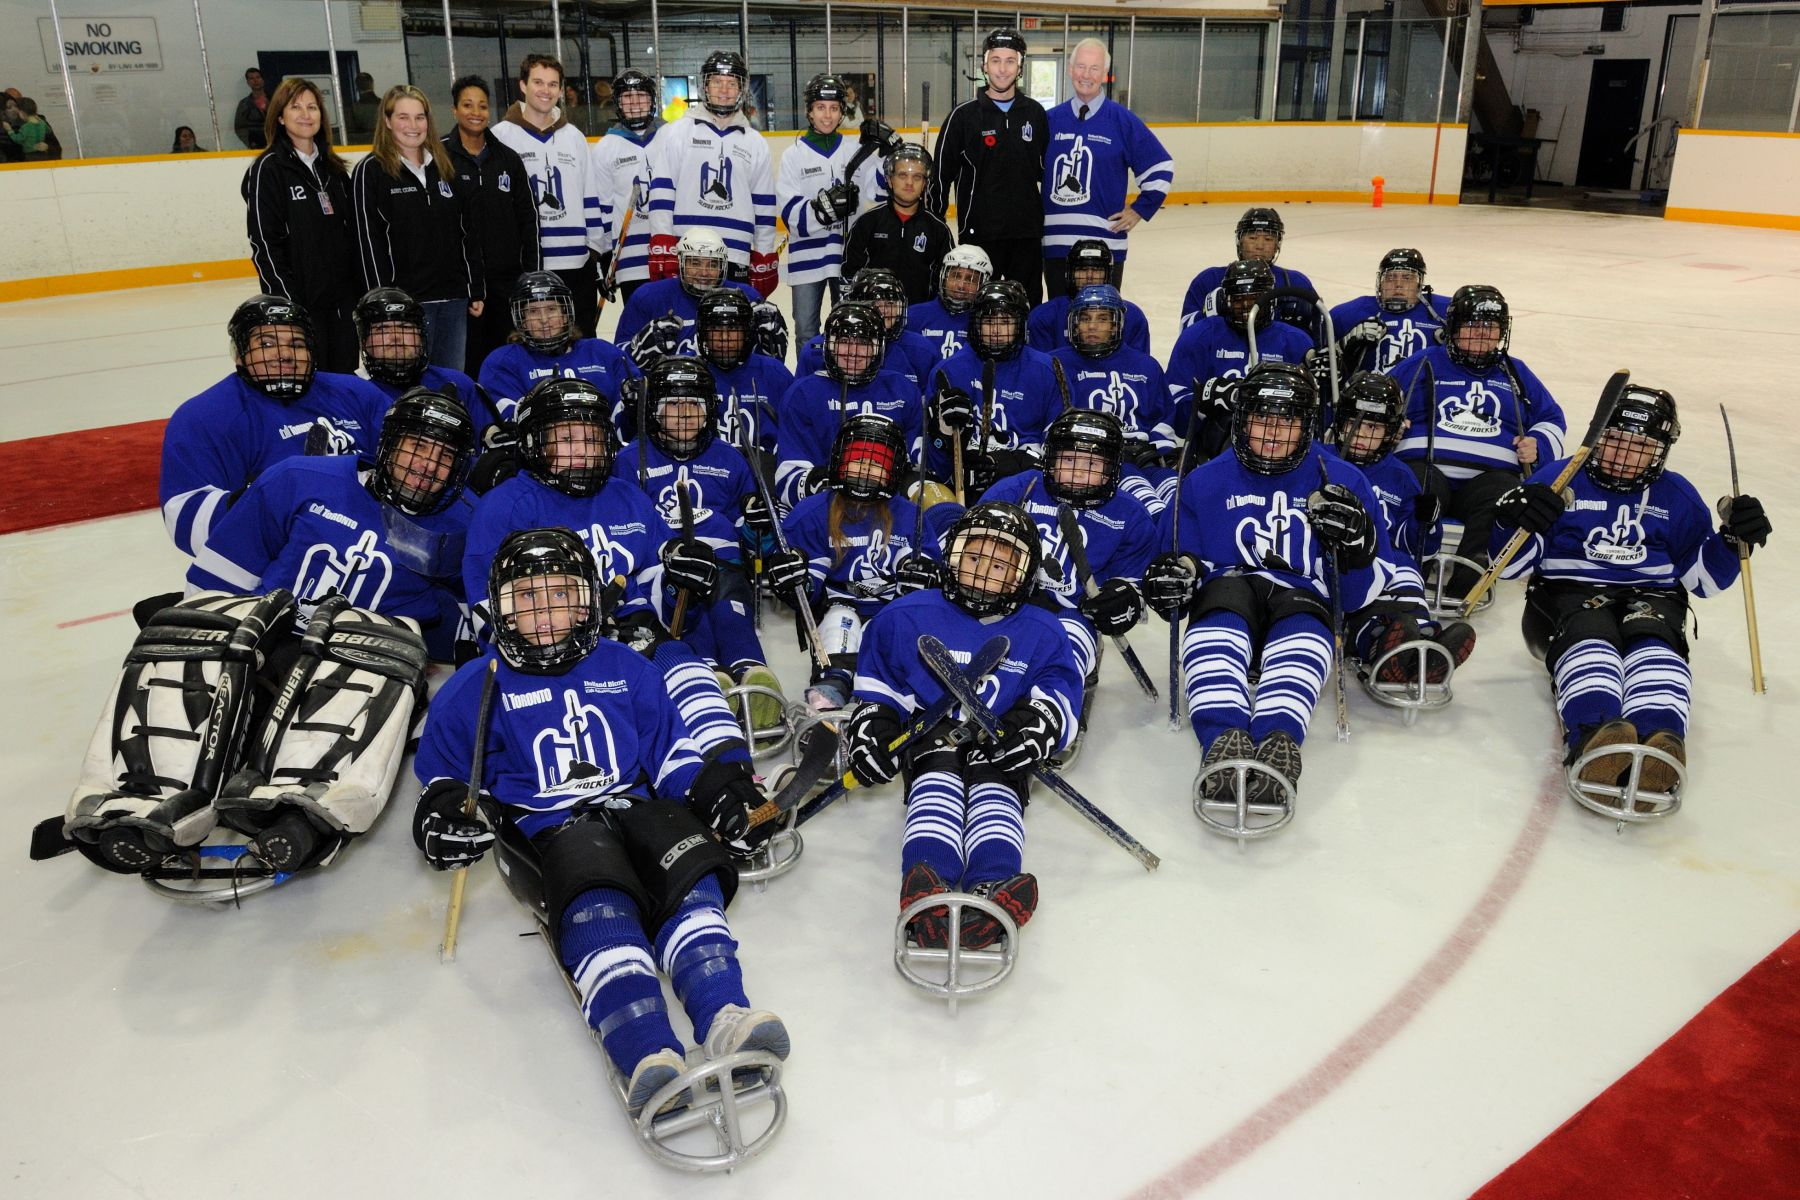 His Excellency the Right Honourable David Johnston, Governor General of Canada, had the opportunity to meet with youth and adult sledge hockey players and representatives from  Toronto Parks, Forestry and Recreation. This organization facilitates partnerships between groups and organizations serving people with disabilities to offer over 15 accessible sports programs across Toronto.